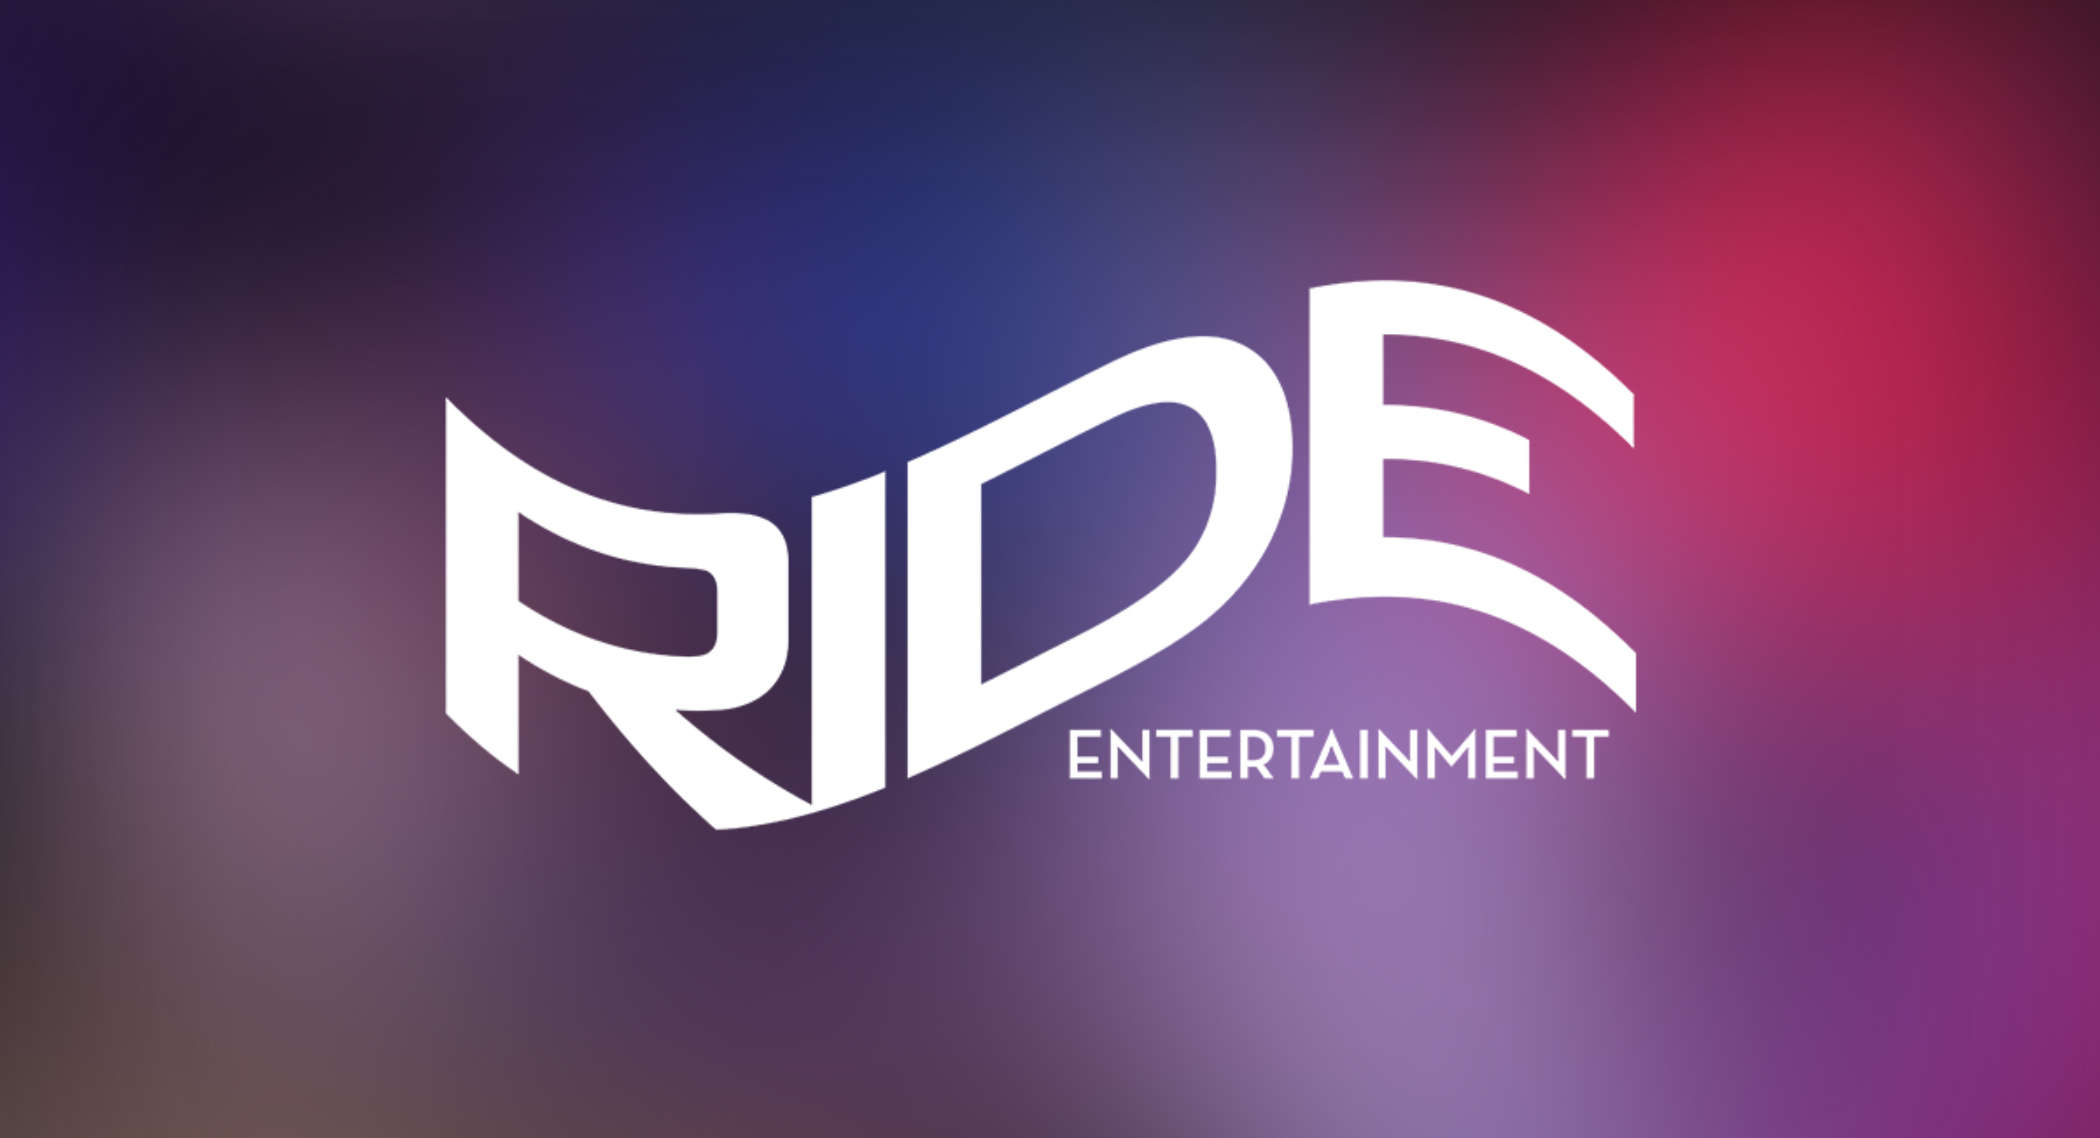 Ride Entertainment